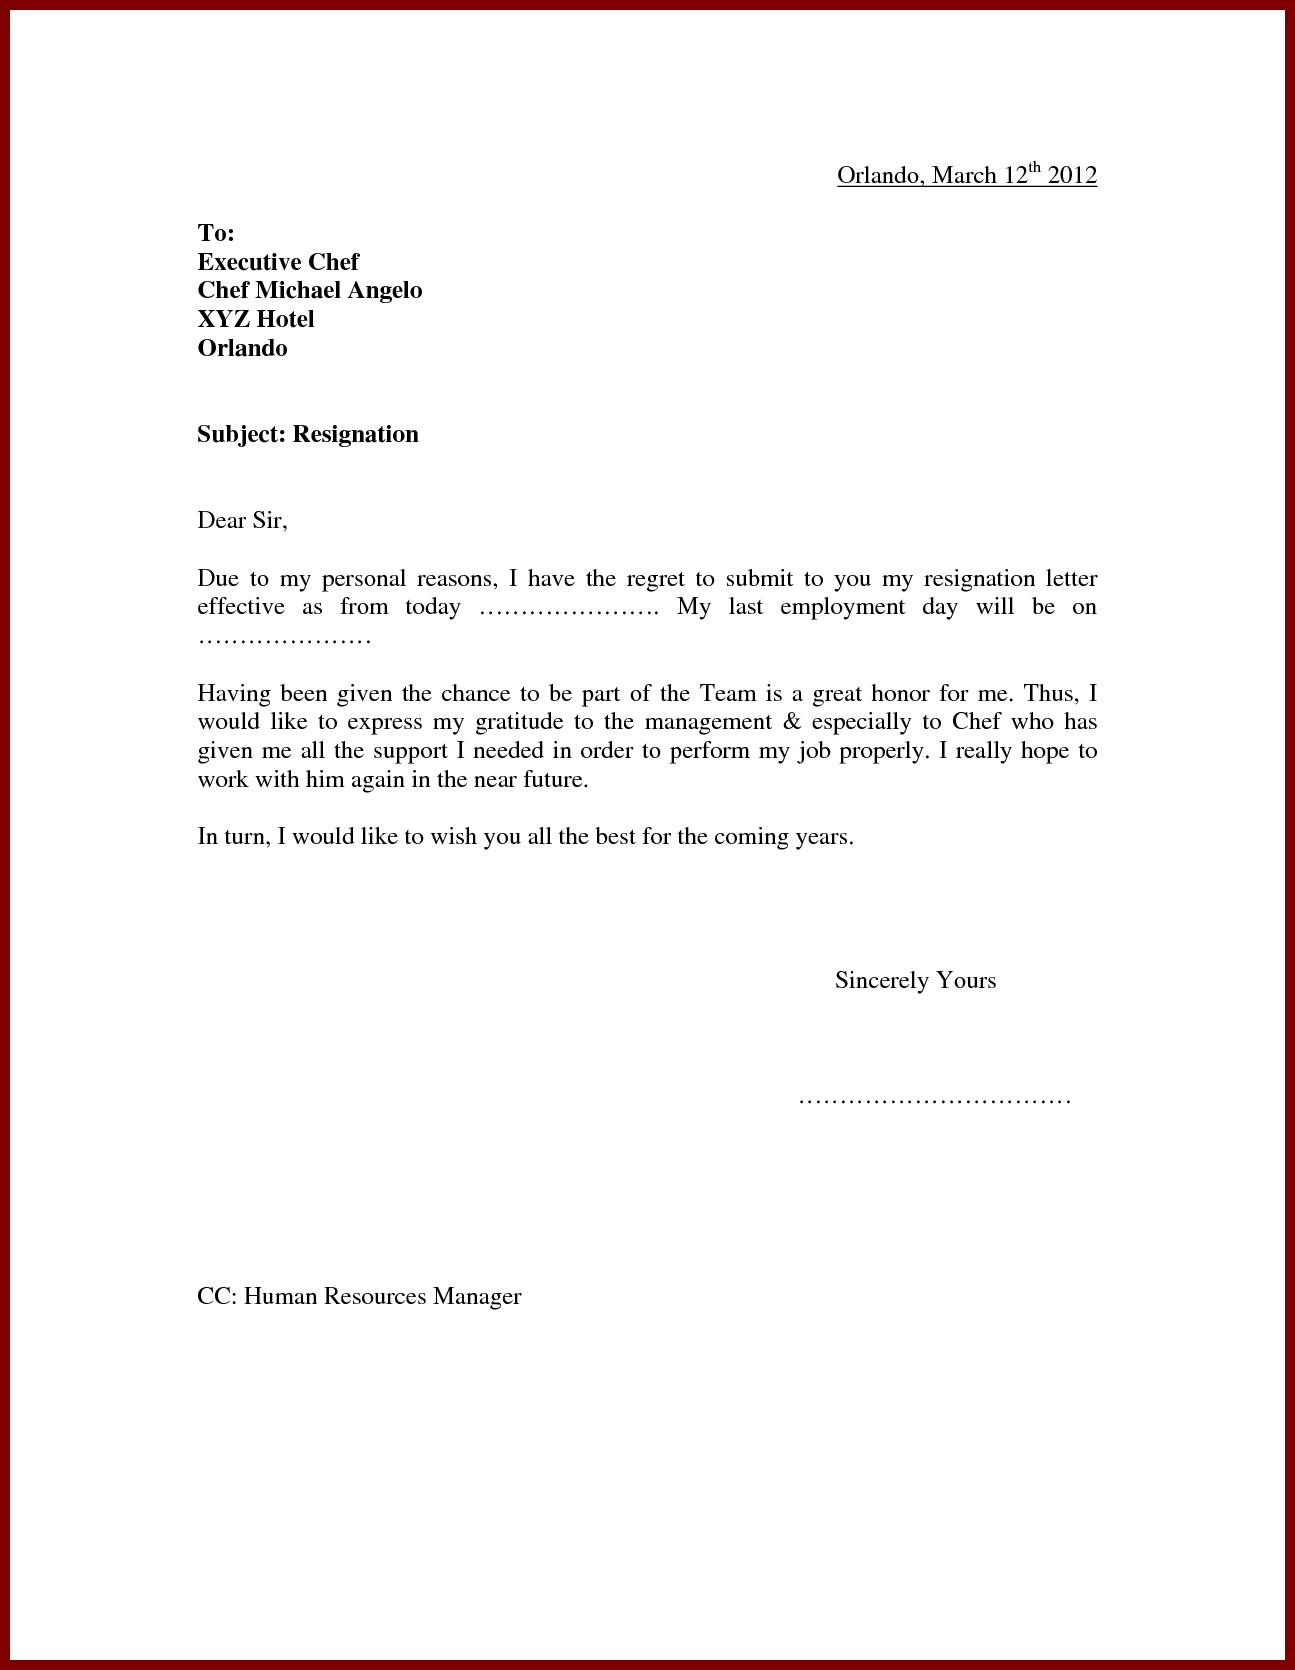 Letter Of Resignation Template Word Samplesofresignationlettersforpersonalreasons86650939 .